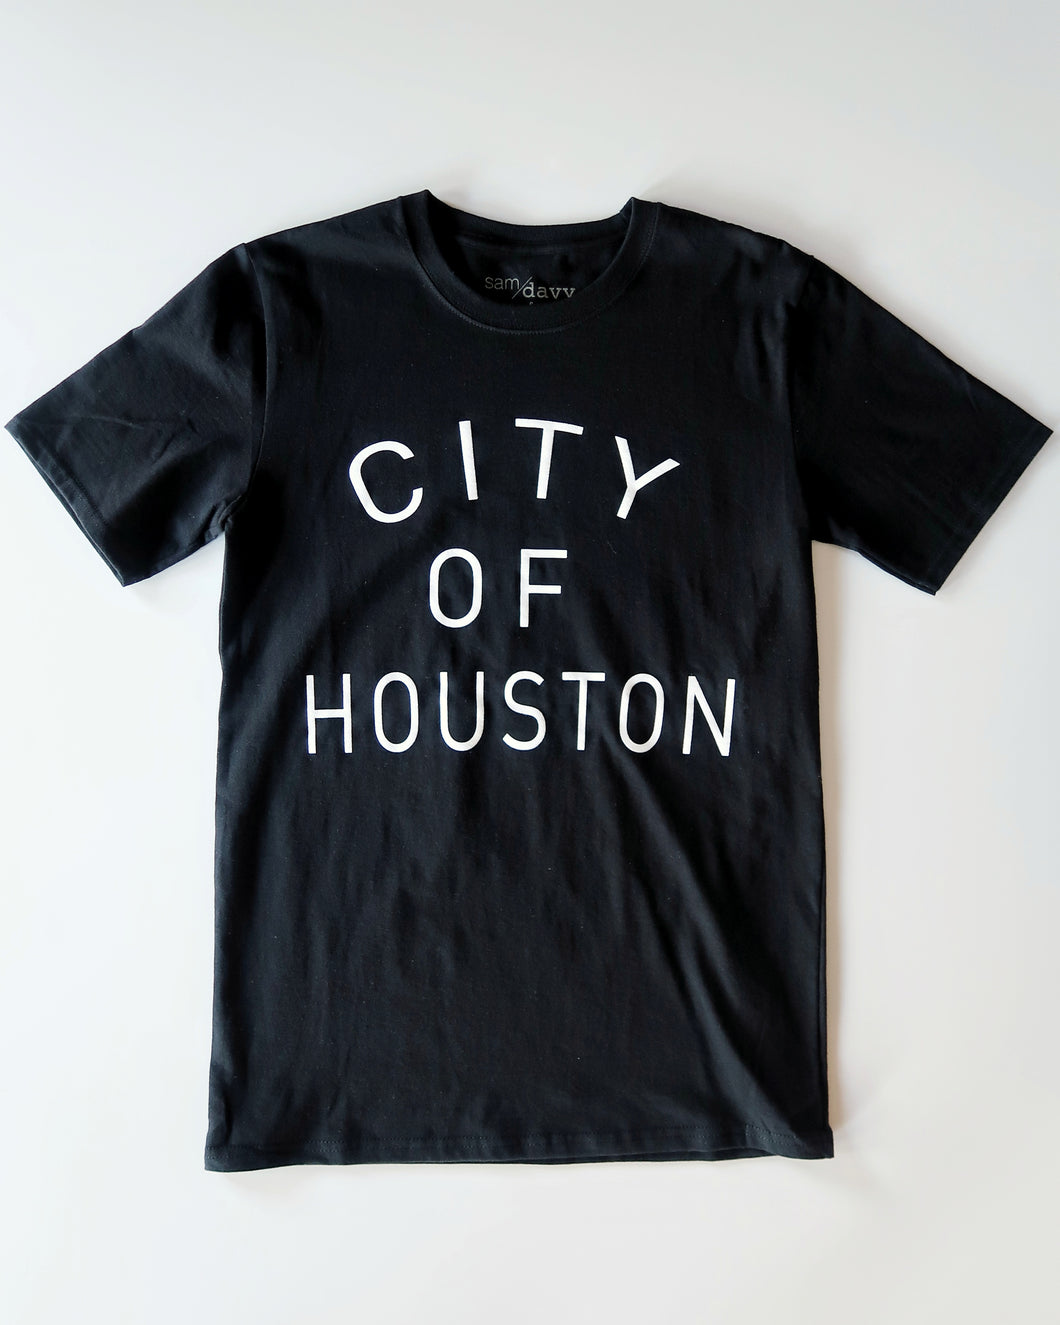 The City of Houston Tee (Unisex Black/White)